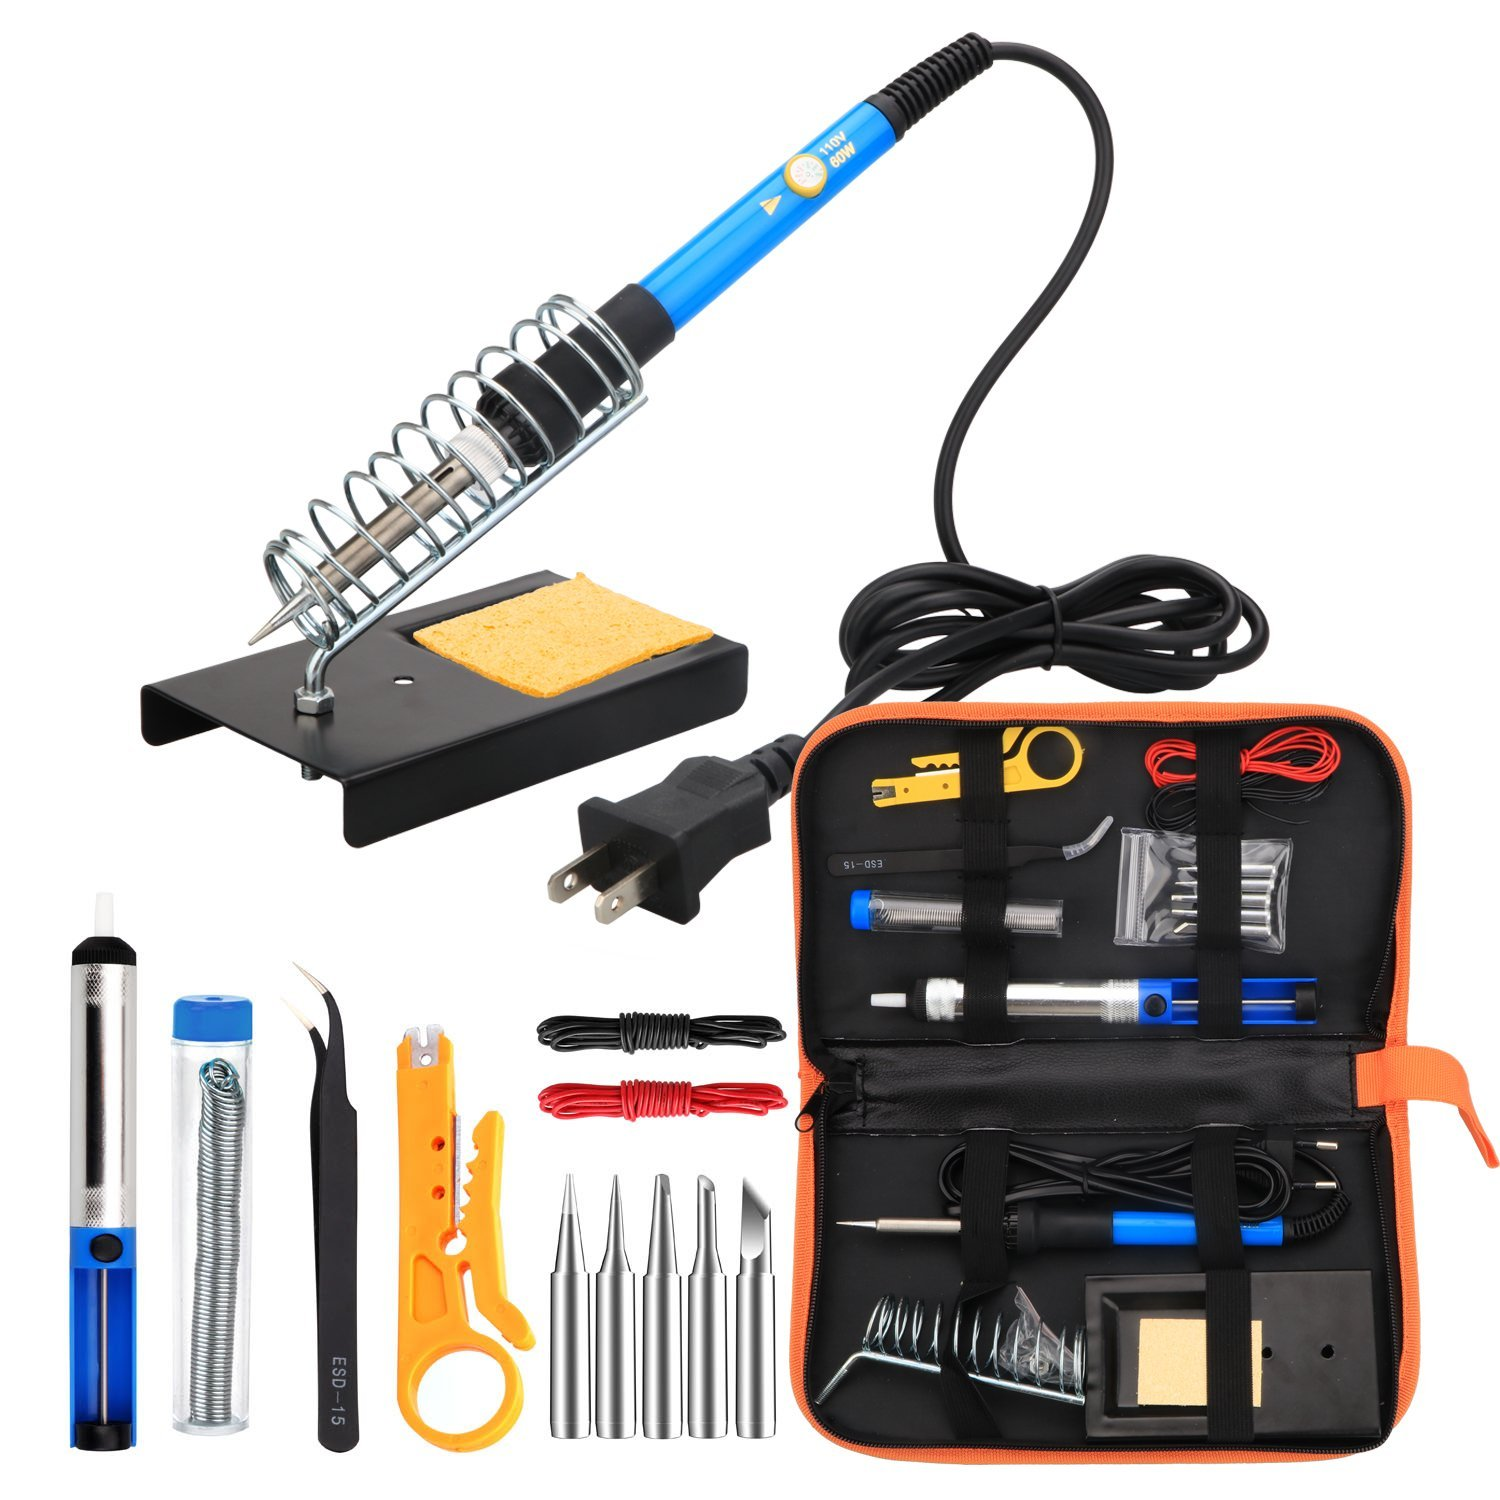 ANBES Soldering Iron Kit Electronics, 60W Adjustable Temperature Welding Tool, 5pcs... by LIVEDITOR LIGHTING